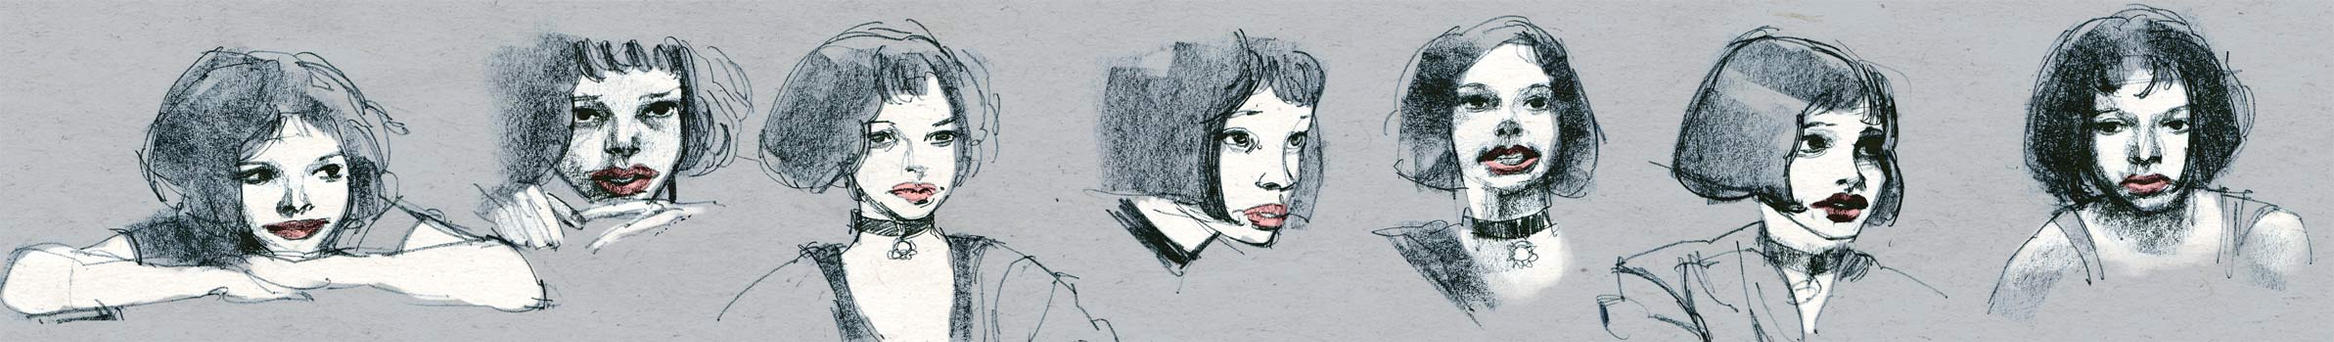 mathilda sketches by celor